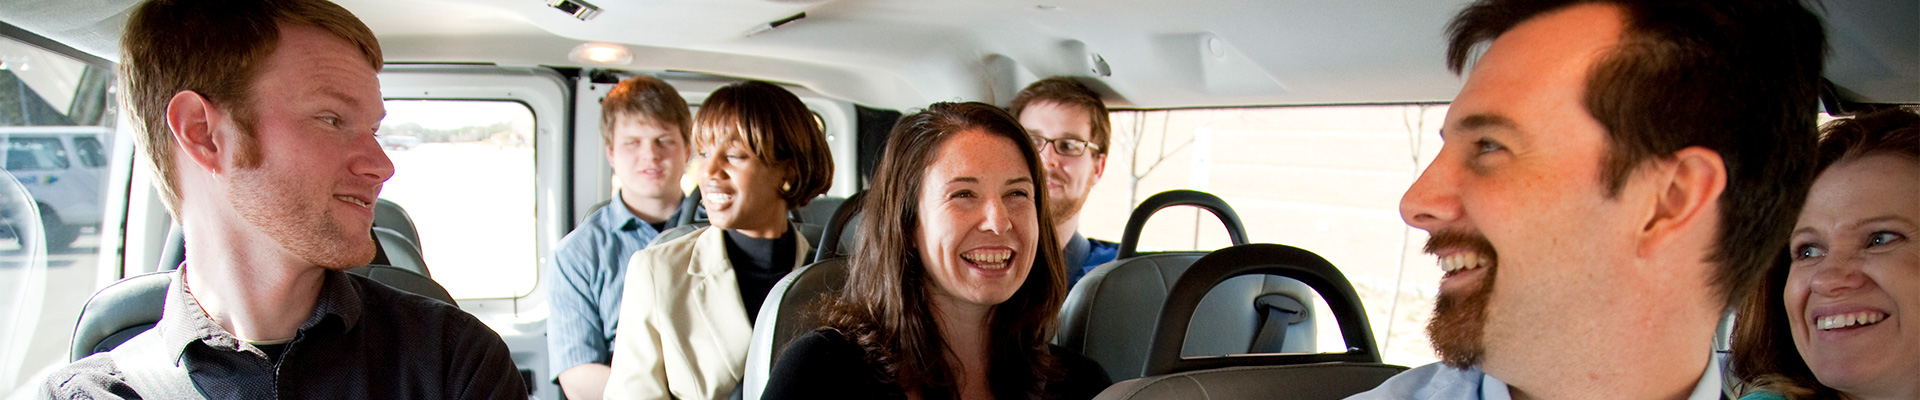 Ridesharing group talking and laughing inside vanpool van